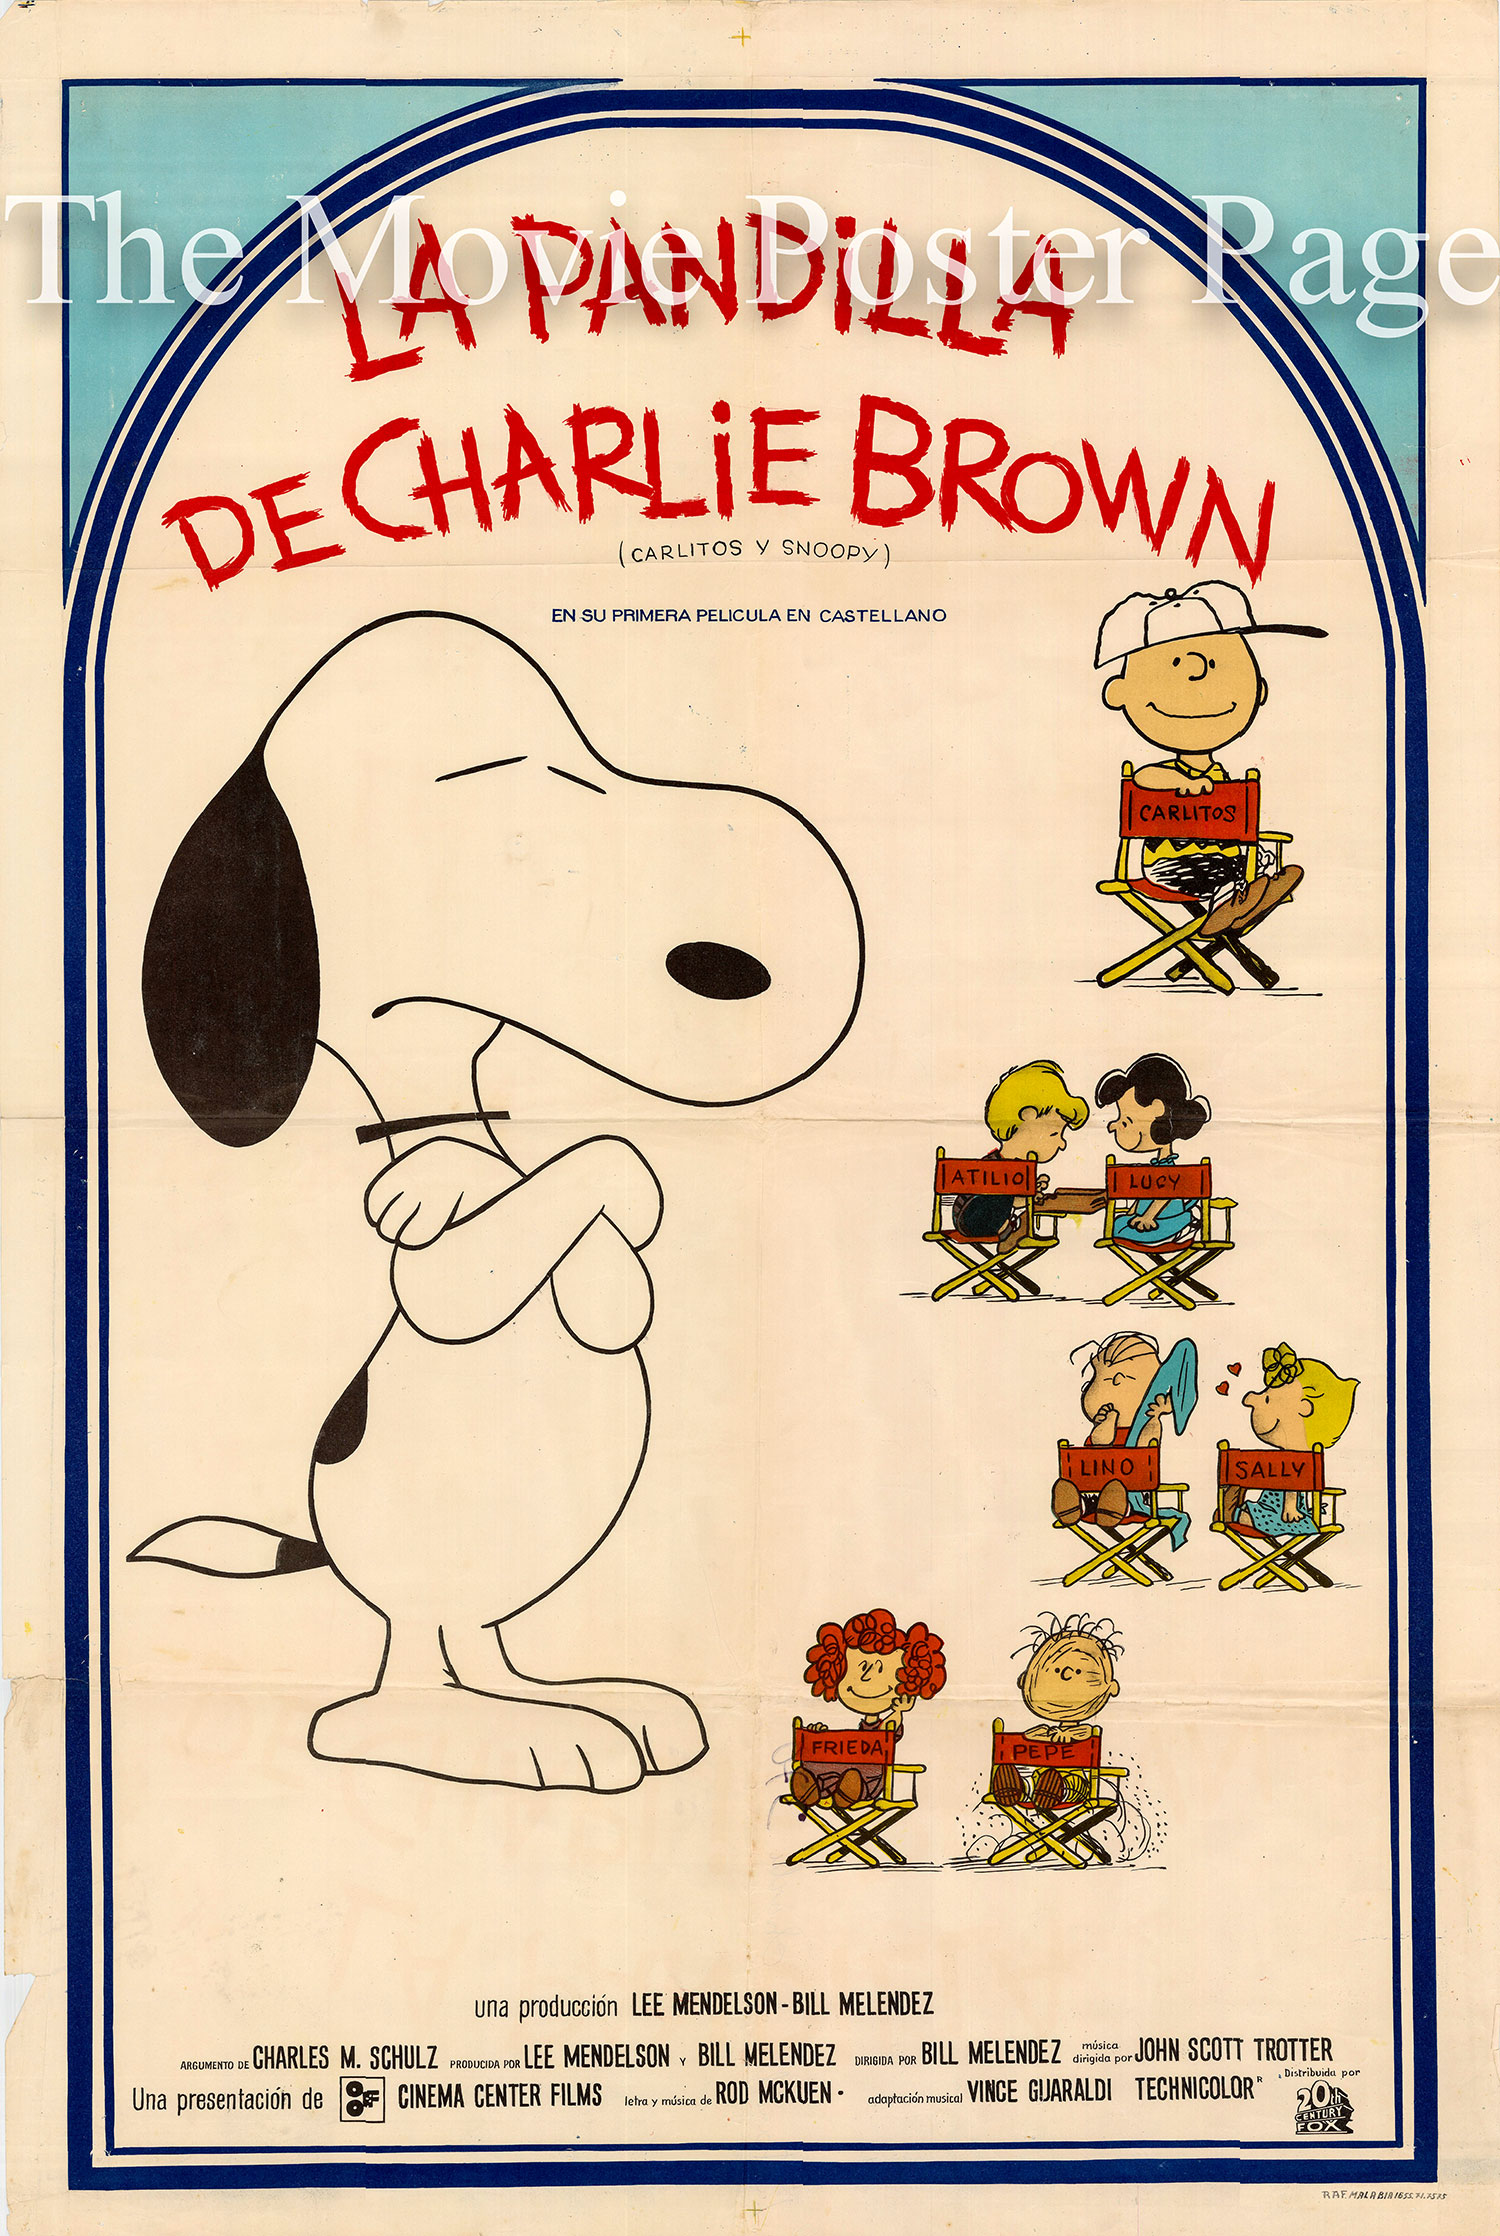 Pictured is an Argentine one-sheet for the 1969 Bill Melendez film A Boy Named Charlie Brown, starring Peter Robbins as the voice of Charlie Brown.